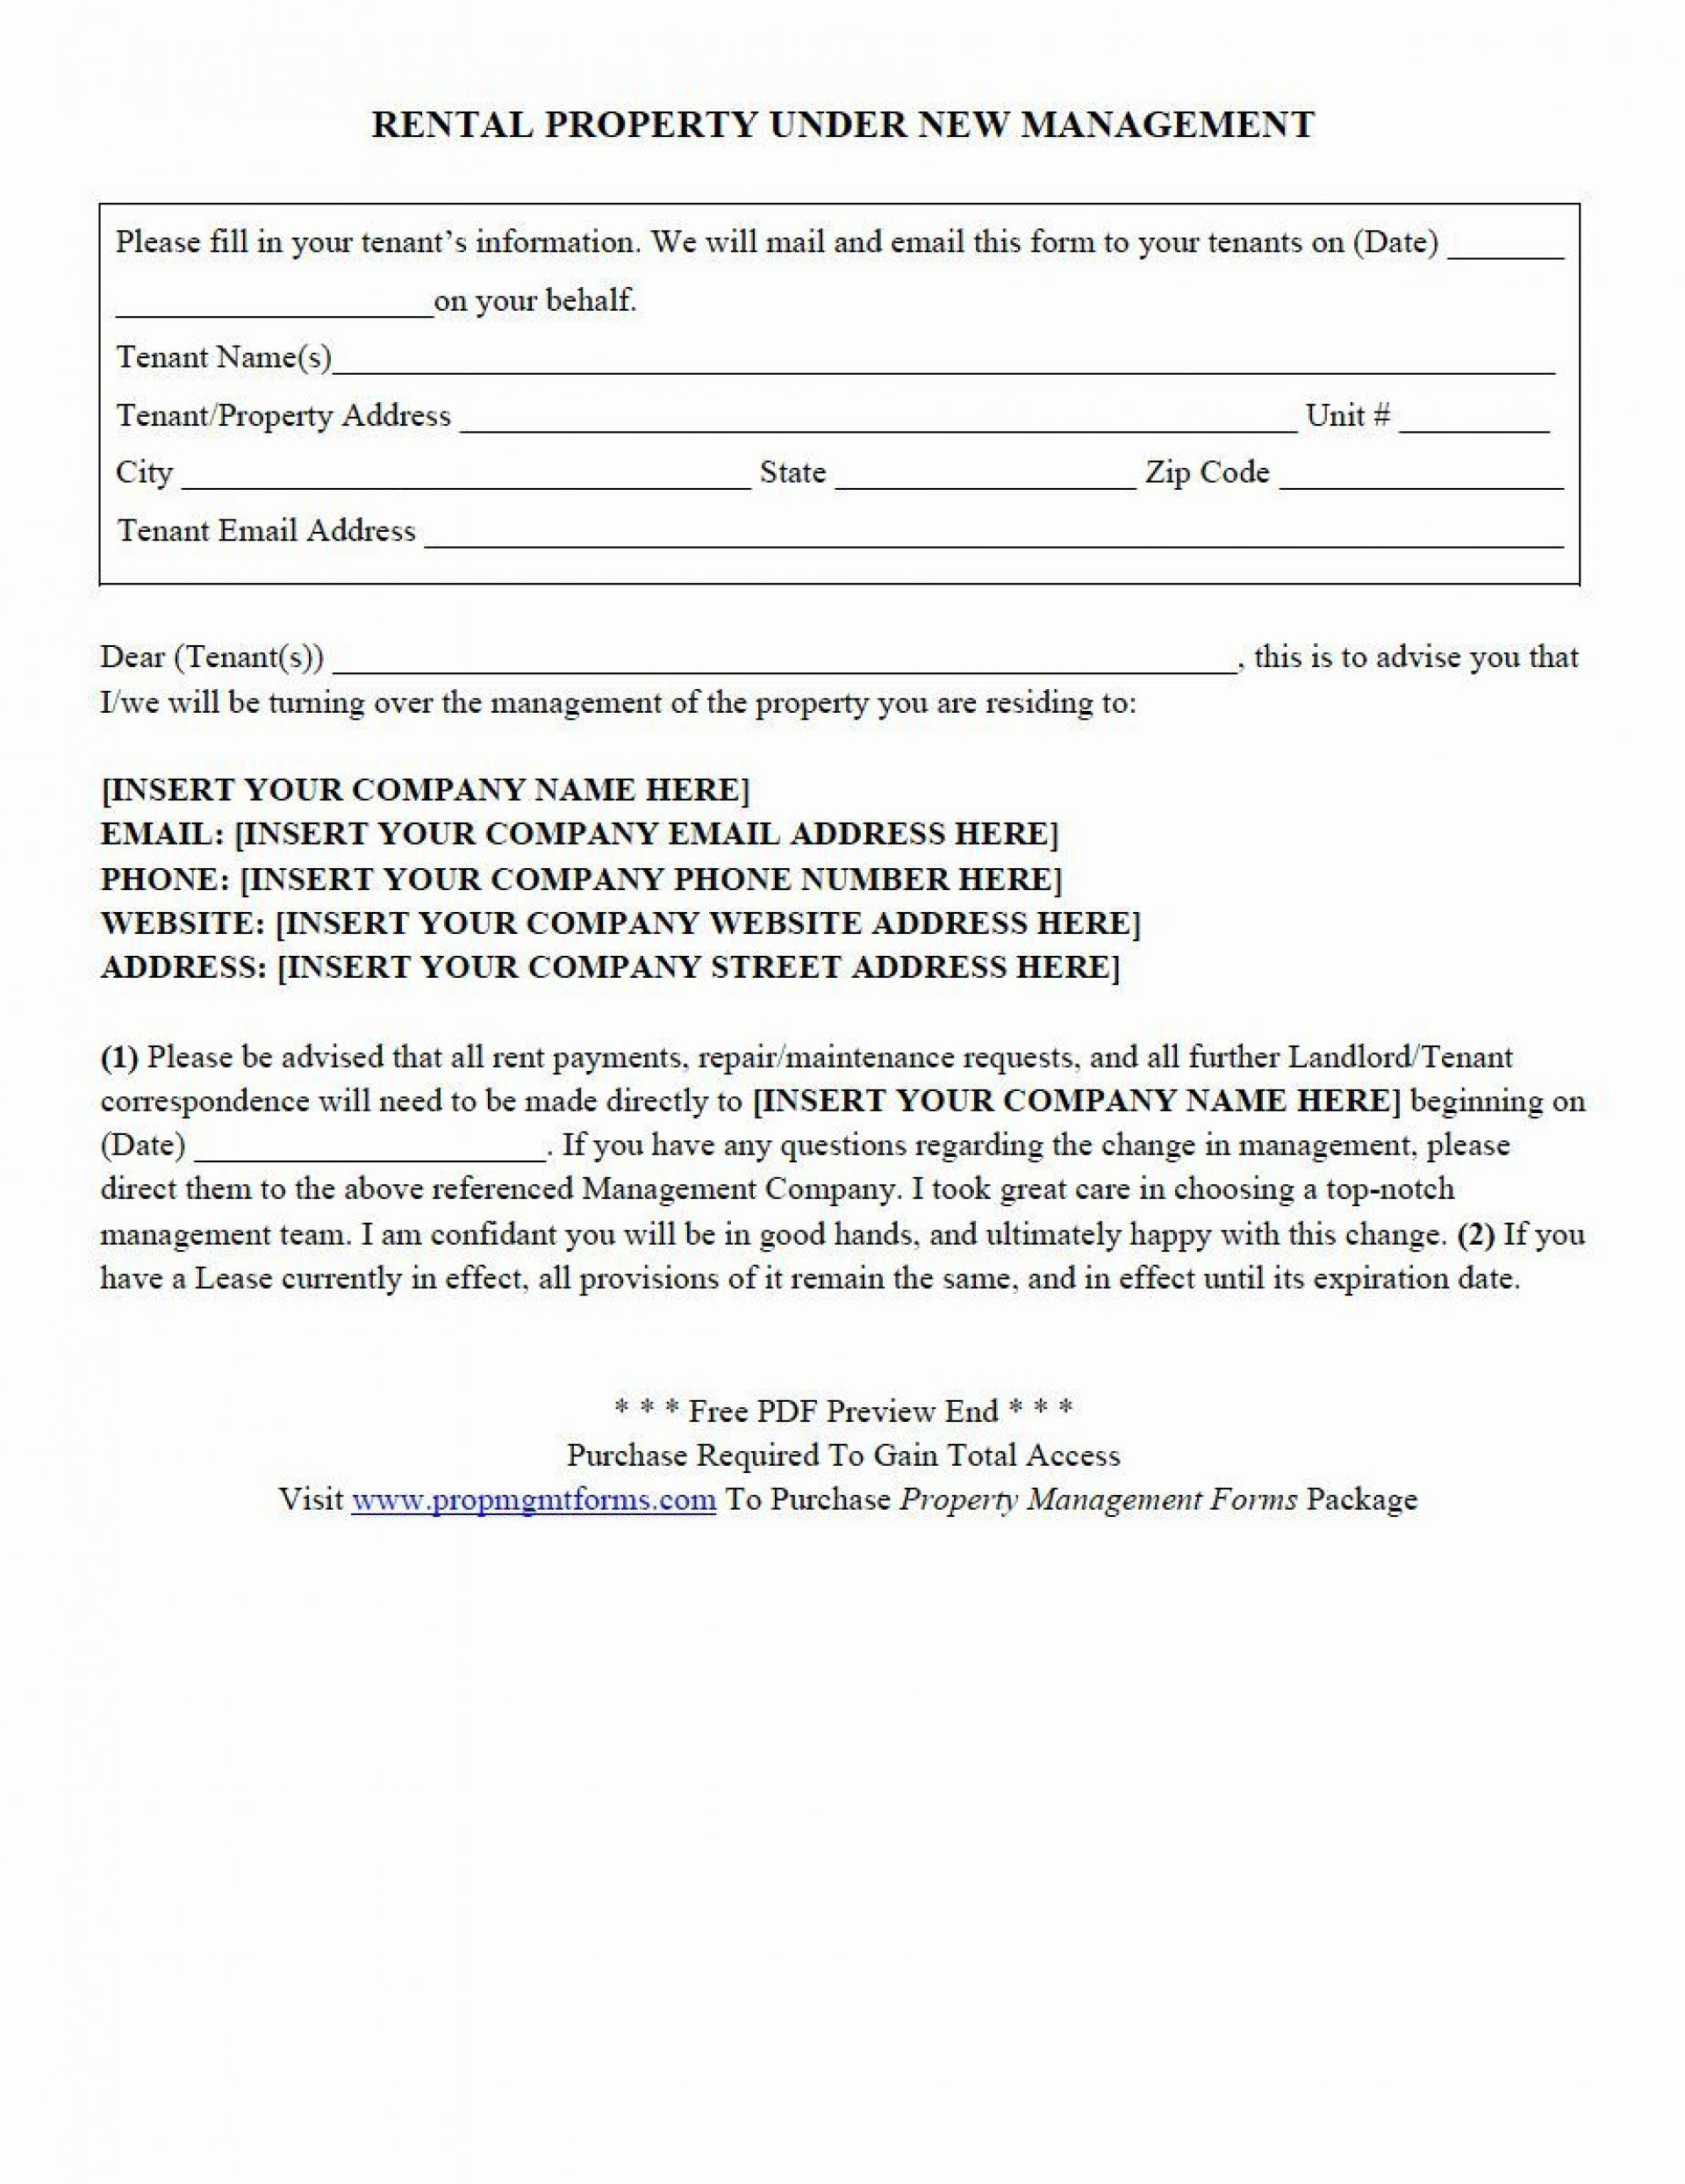 001 Fantastic Property Management Agreement Template Pdf Idea  Contract1920